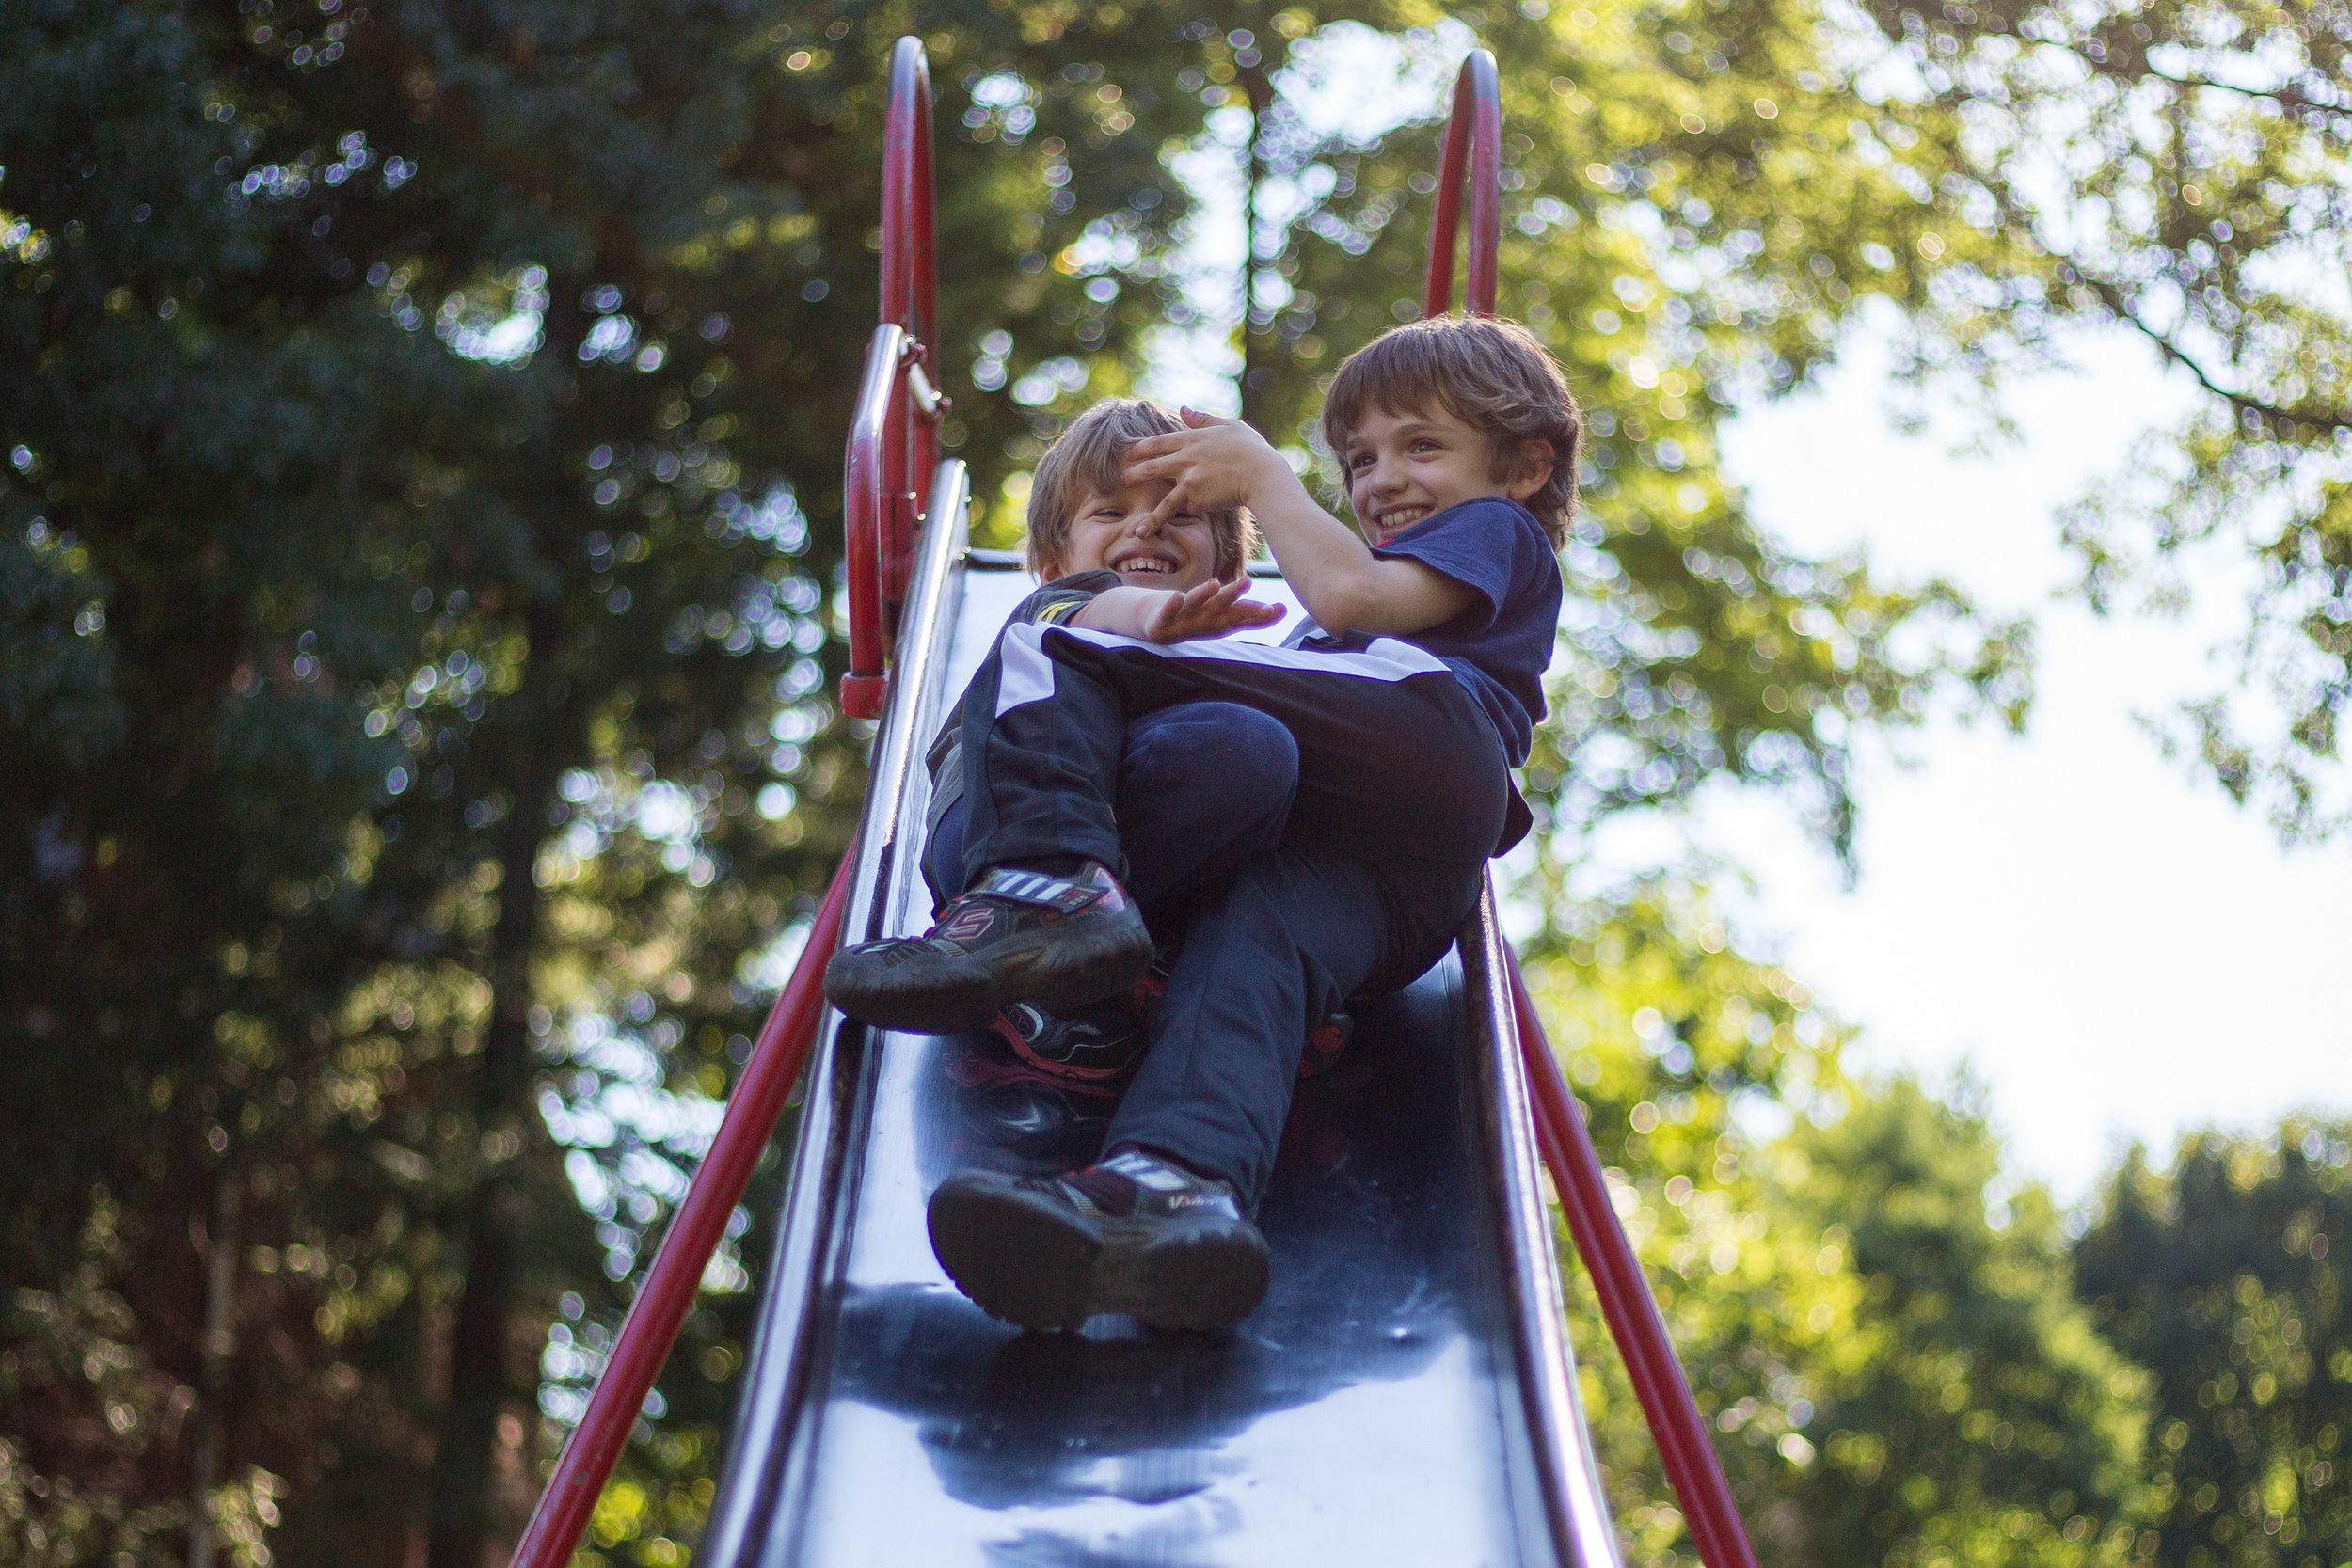 Gabriel Martella, 4, left and older brother Domynik, 8, play on the slide at Wayne Park in Beaver on Monday afternoon.